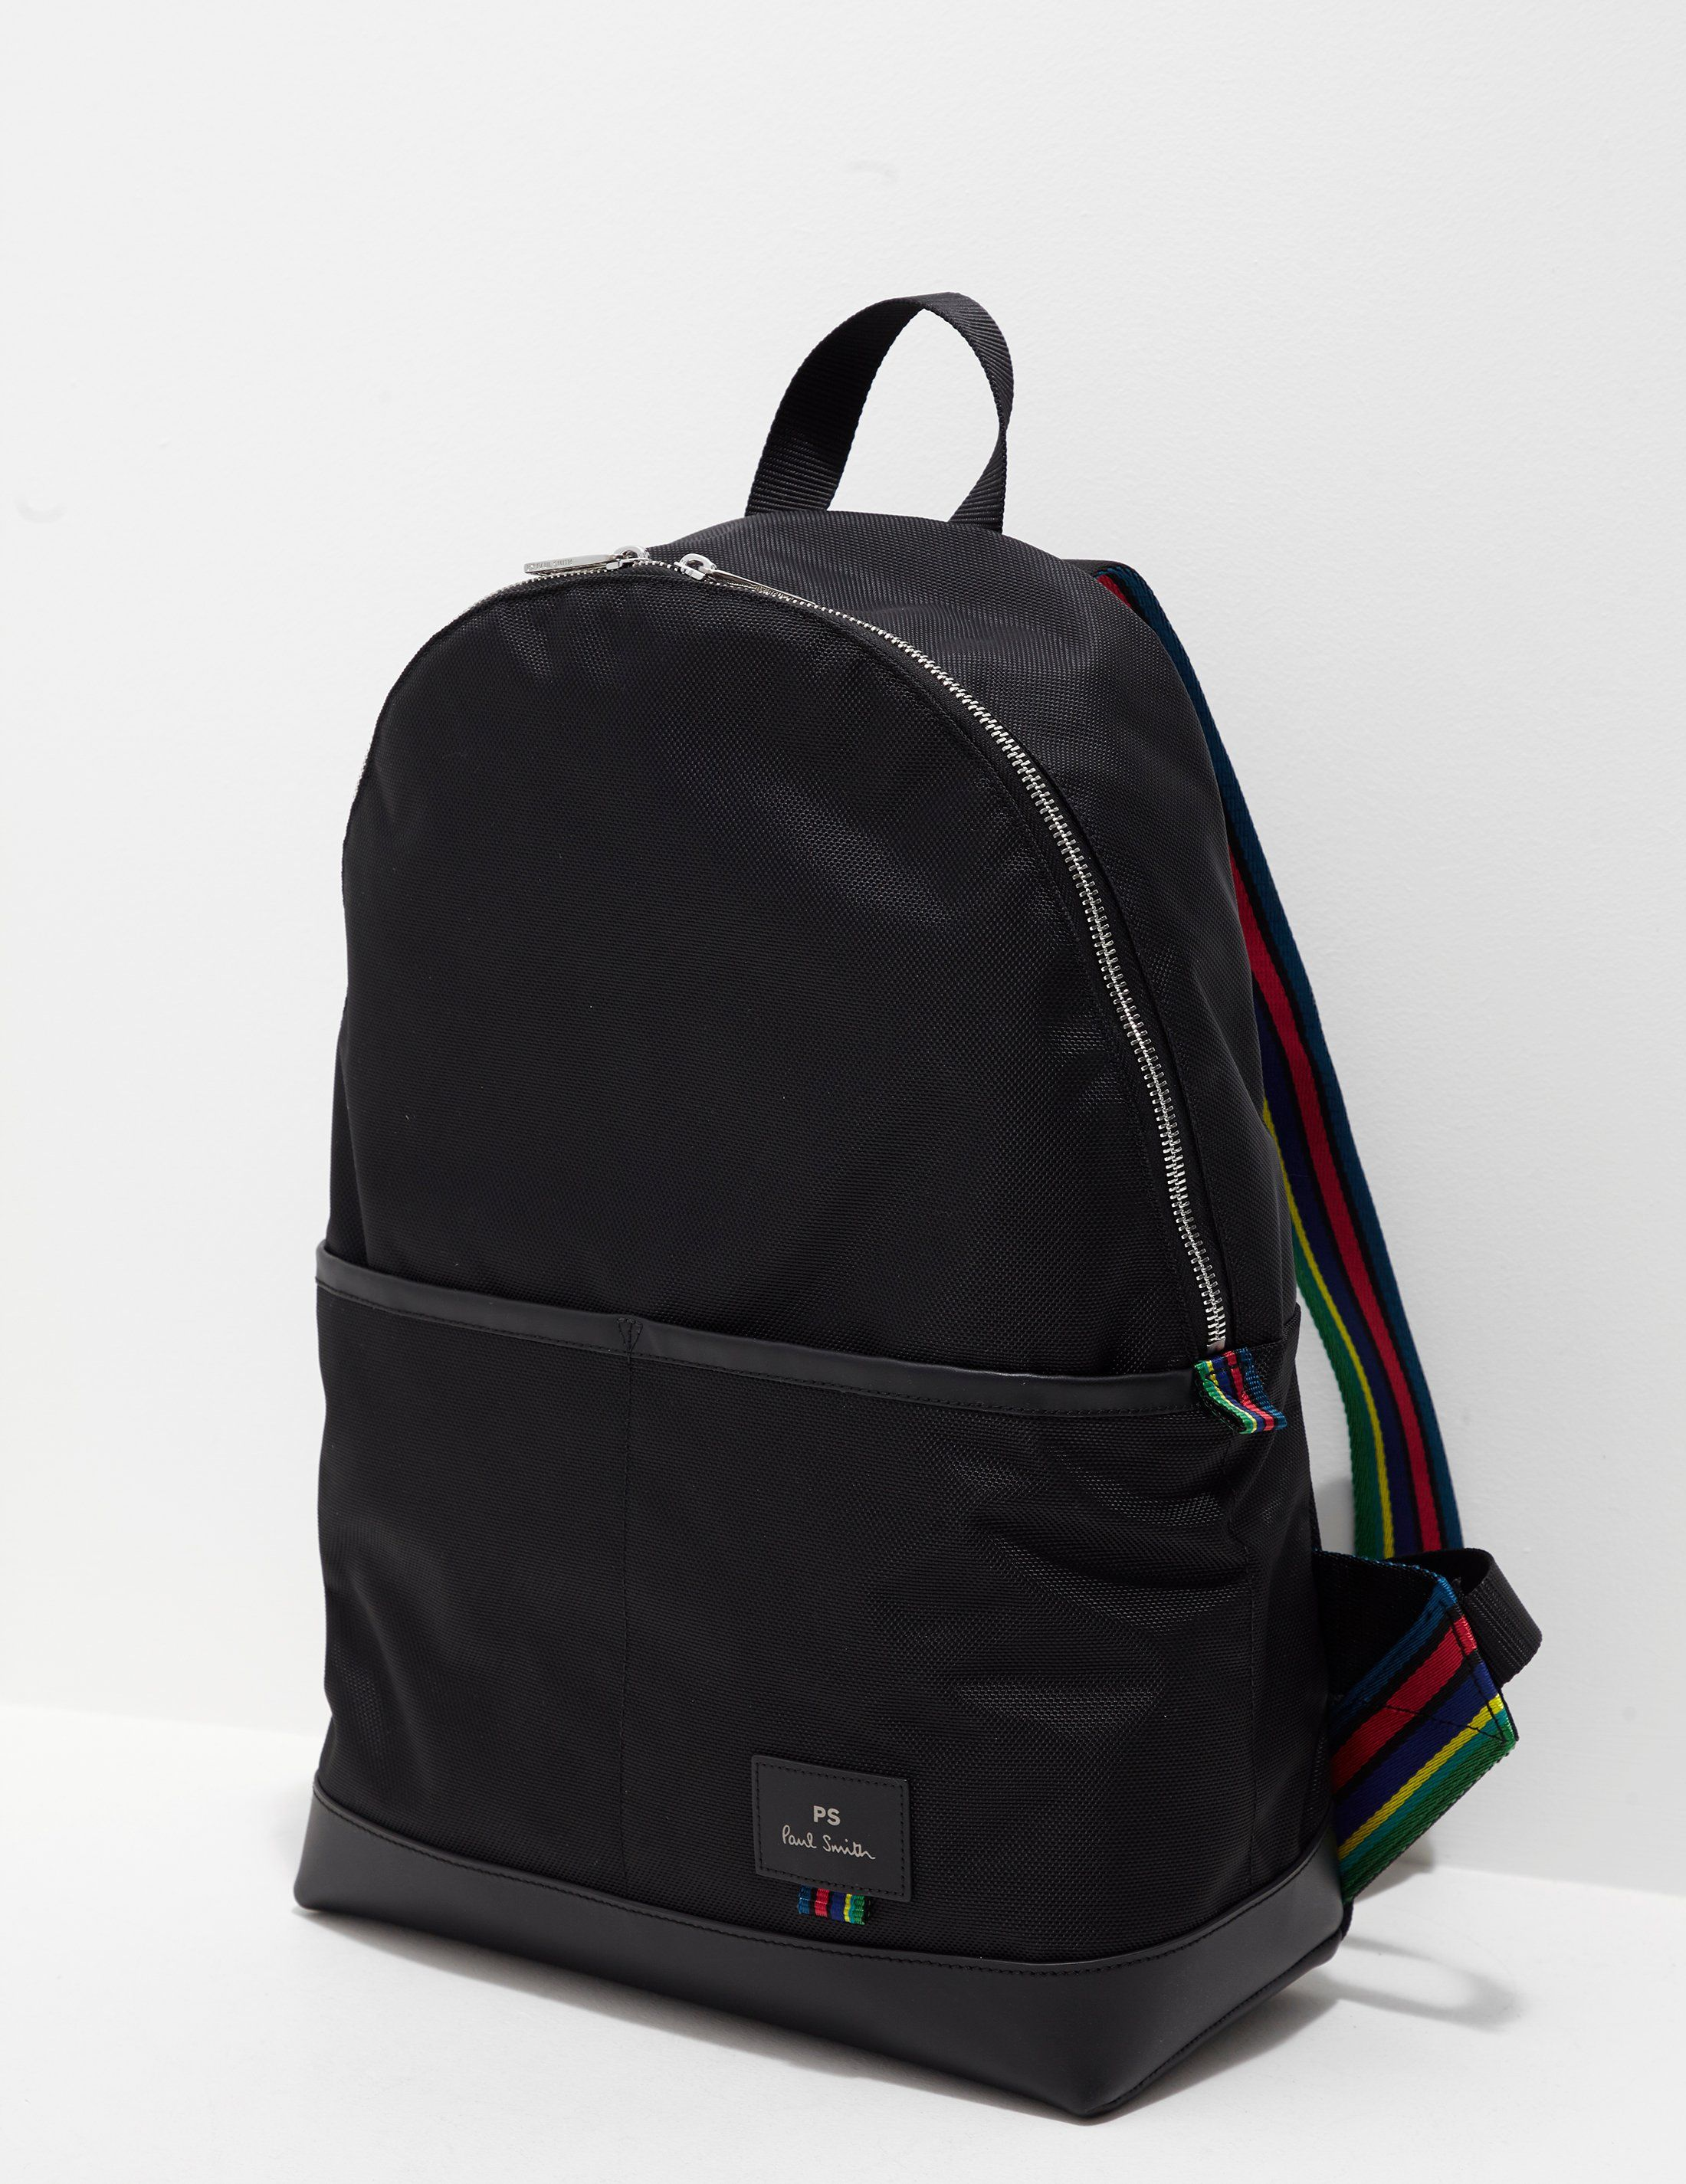 PS Paul Smith Pocket Backpack - Online Exclusive